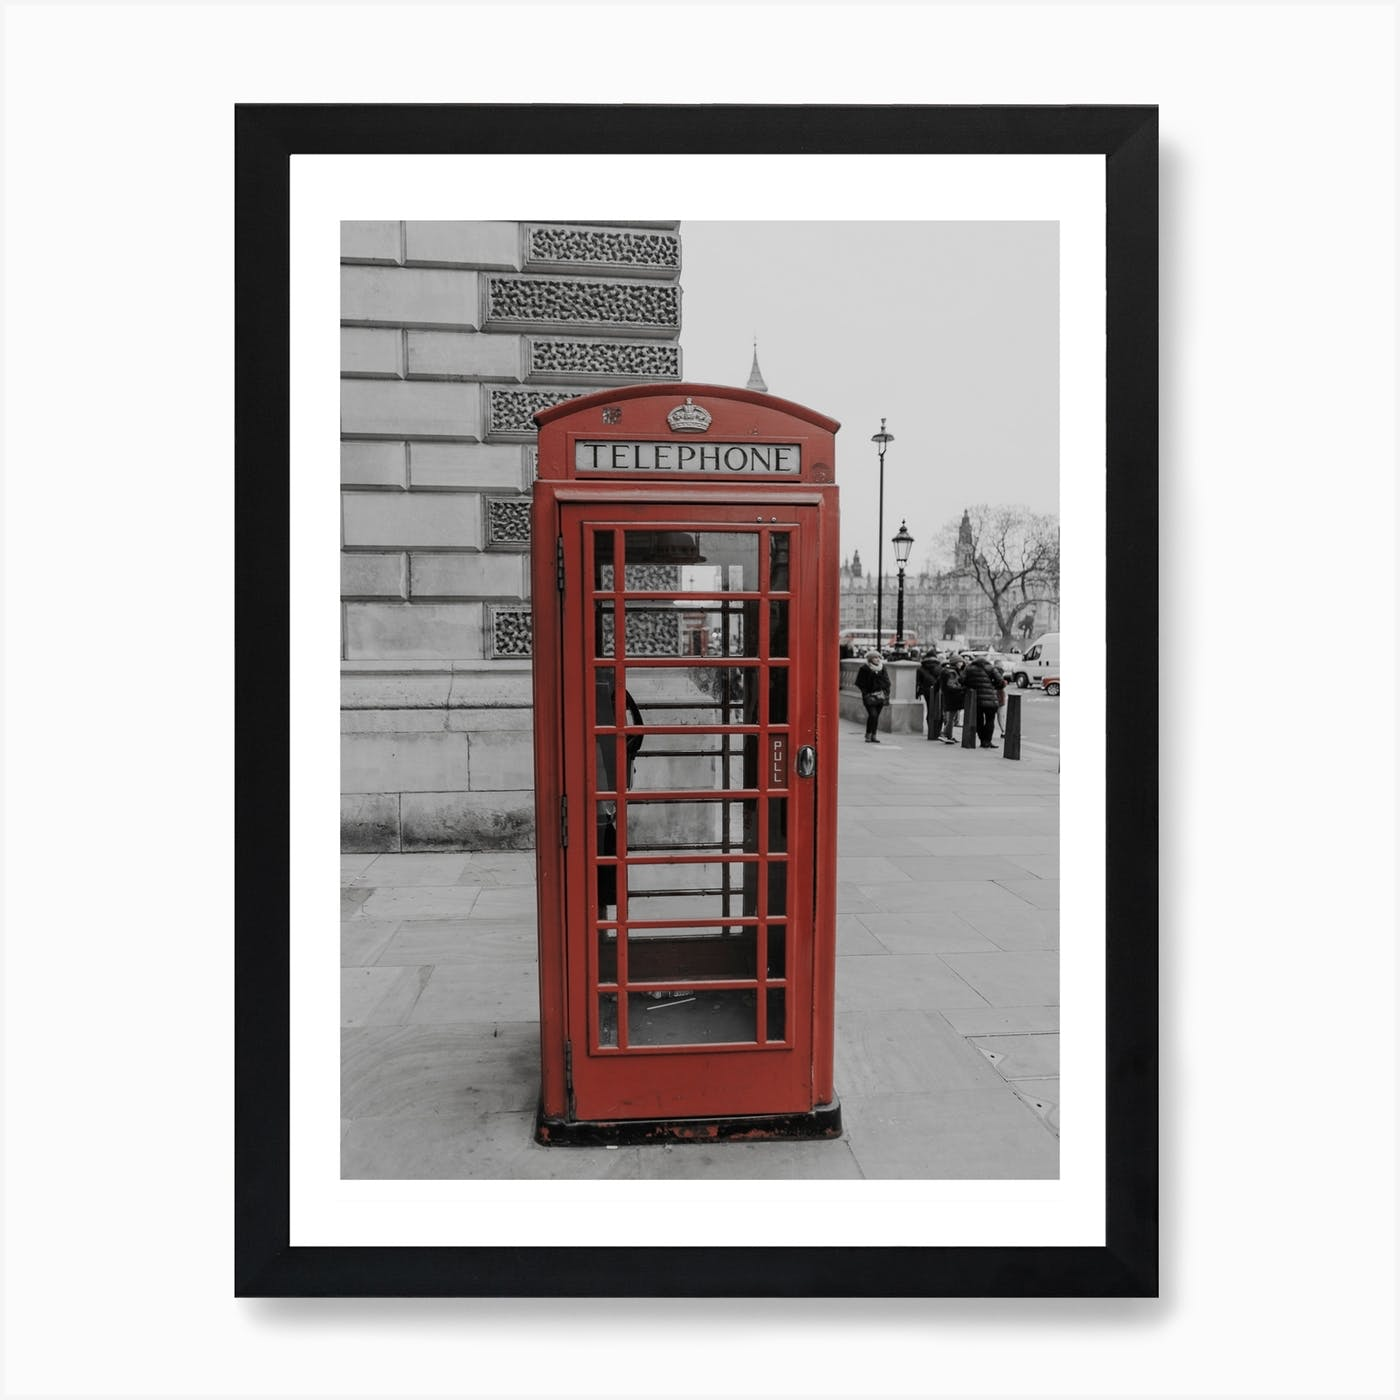 RED UMBRELLA PHONE-BOX LONDON STREET PICTURE PRINT ON FRAMED CANVAS  WALL ART